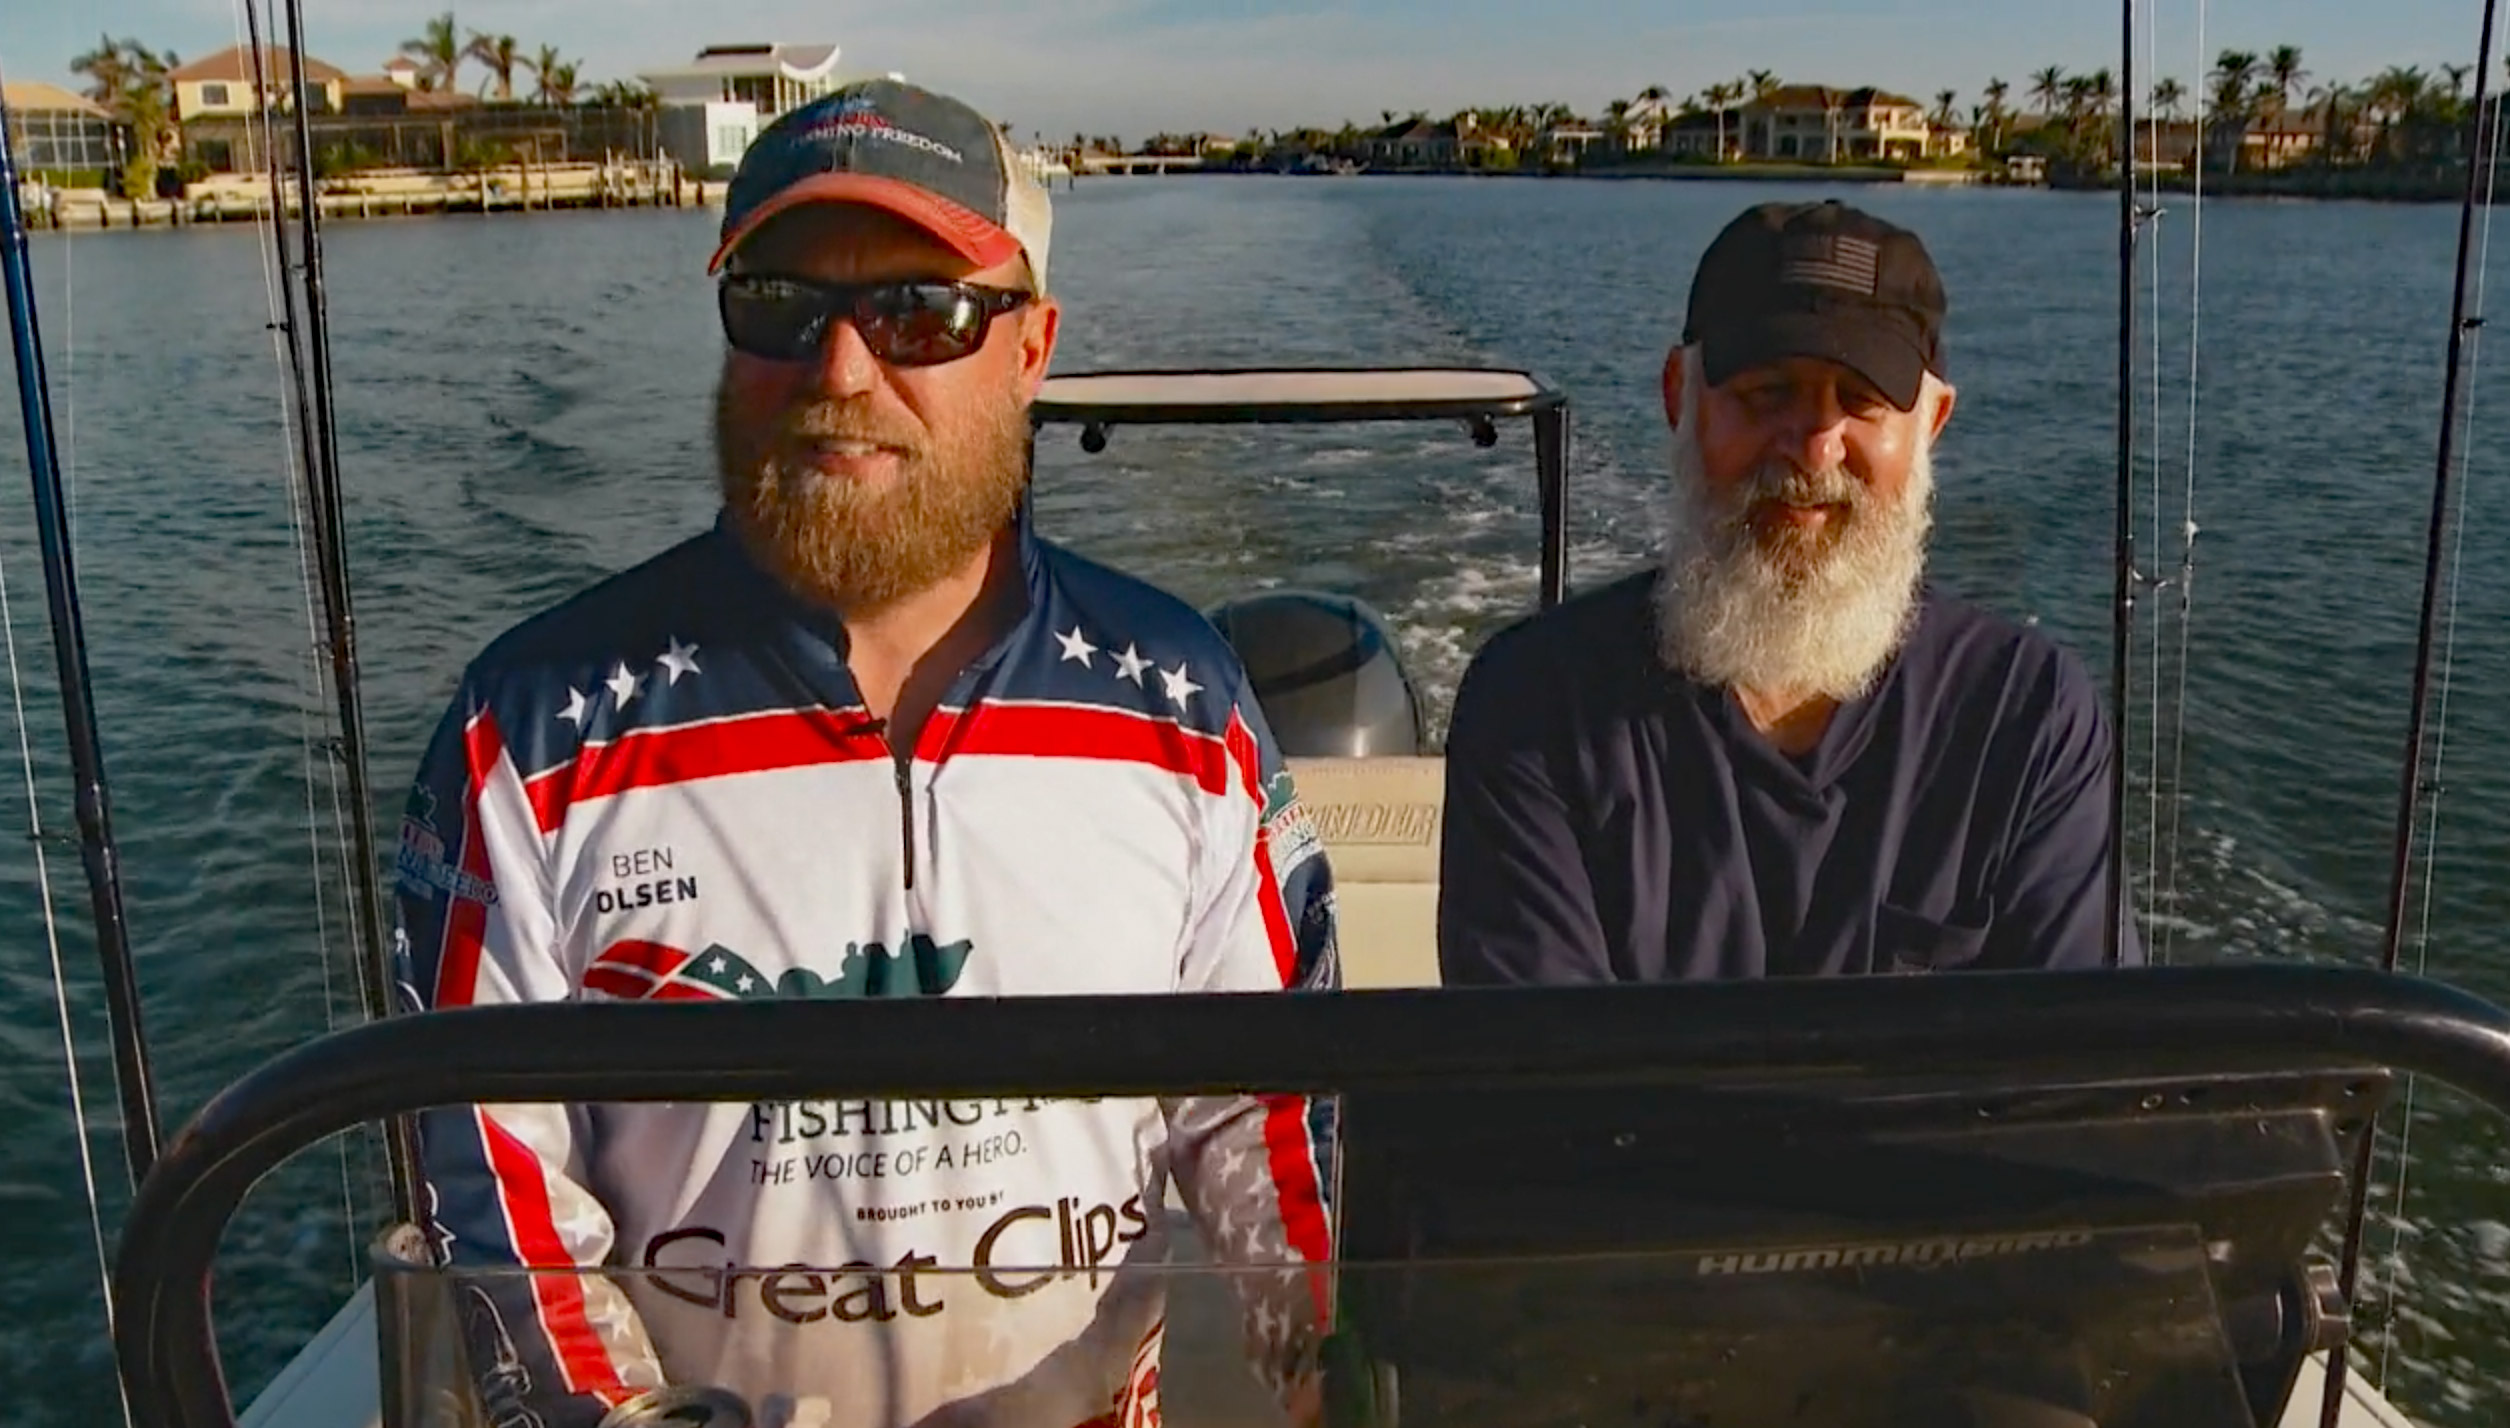 Area vietnam veteran to be featured on discovery channel for Fishing shows on discovery channel